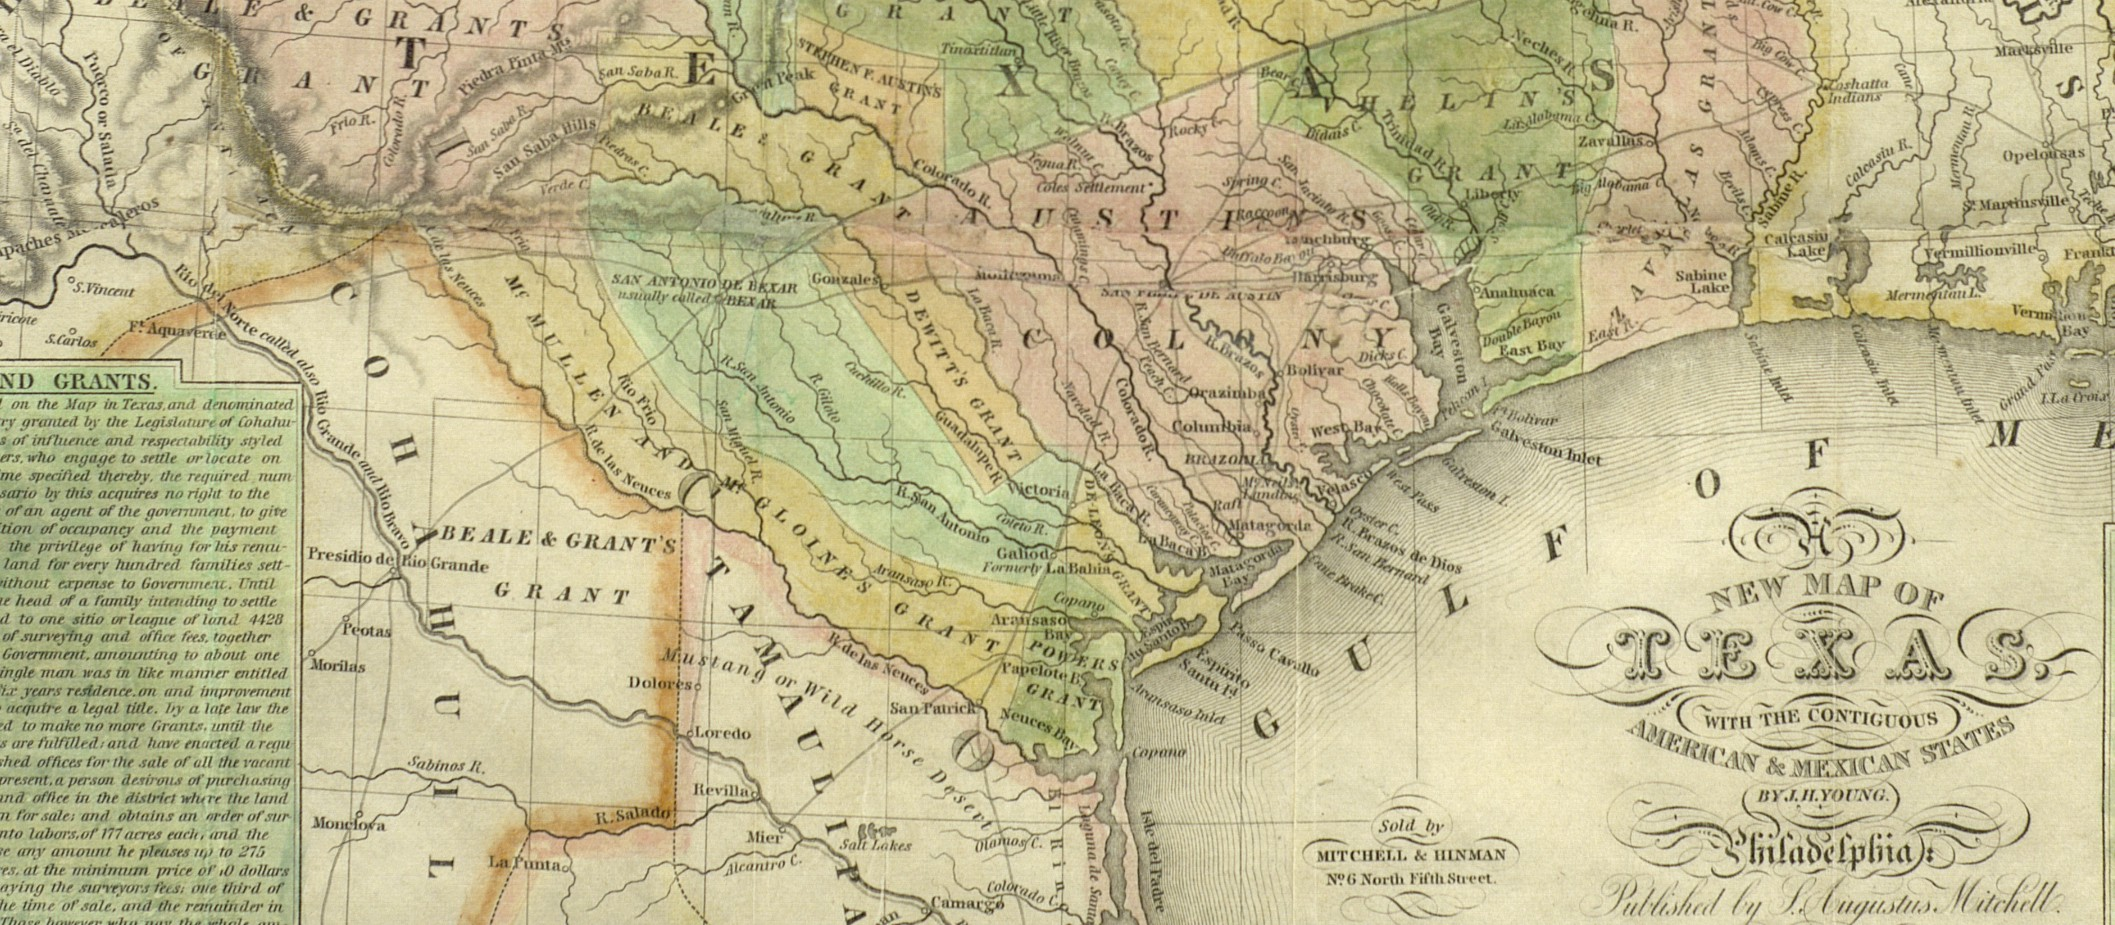 A New Map of Texas with the Contiguous American & Mexican States, 1835